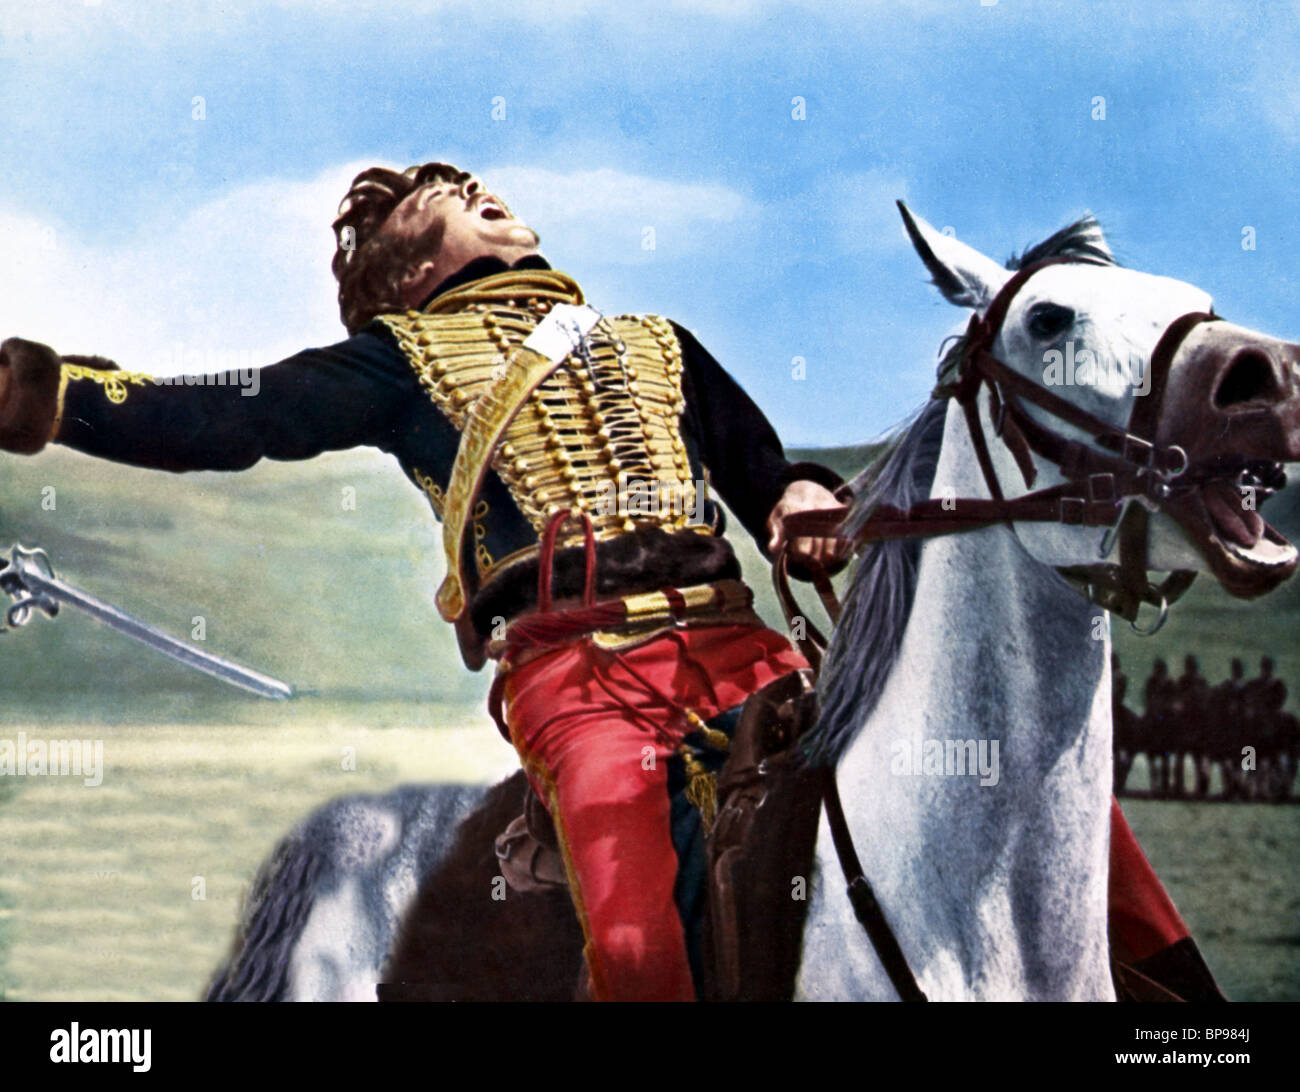 DAVID HEMMINGS THE CHARGE OF THE LIGHT BRIGADE (1968) - Stock Image